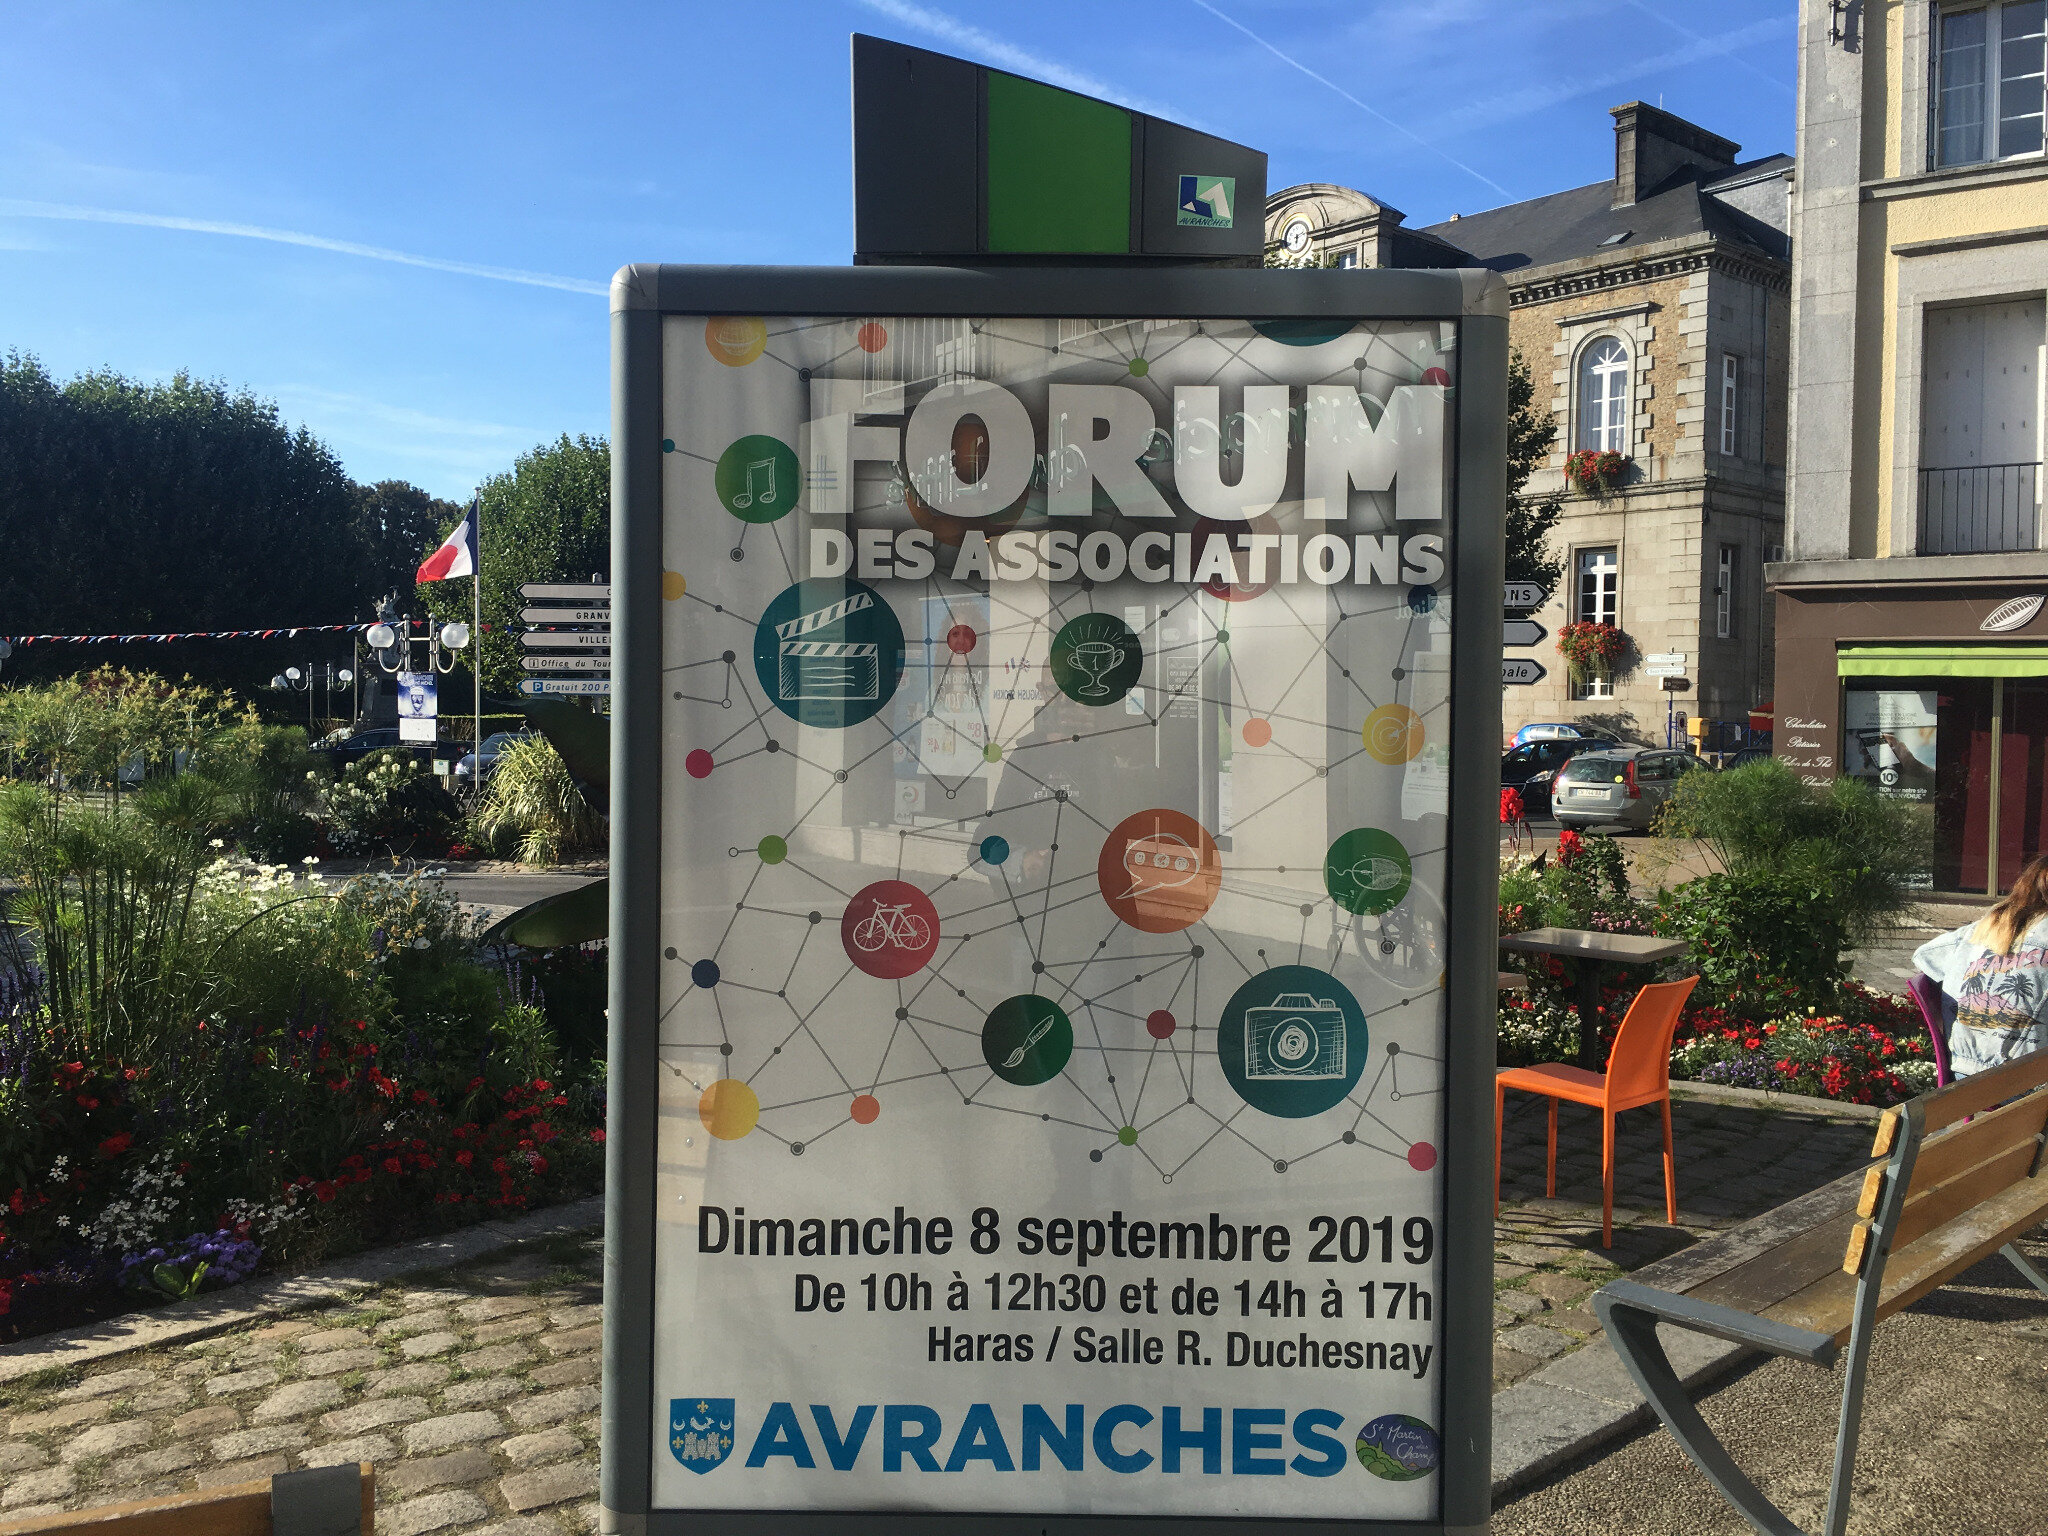 forum des associations à Avranches - dimanche 8 septembre 2019